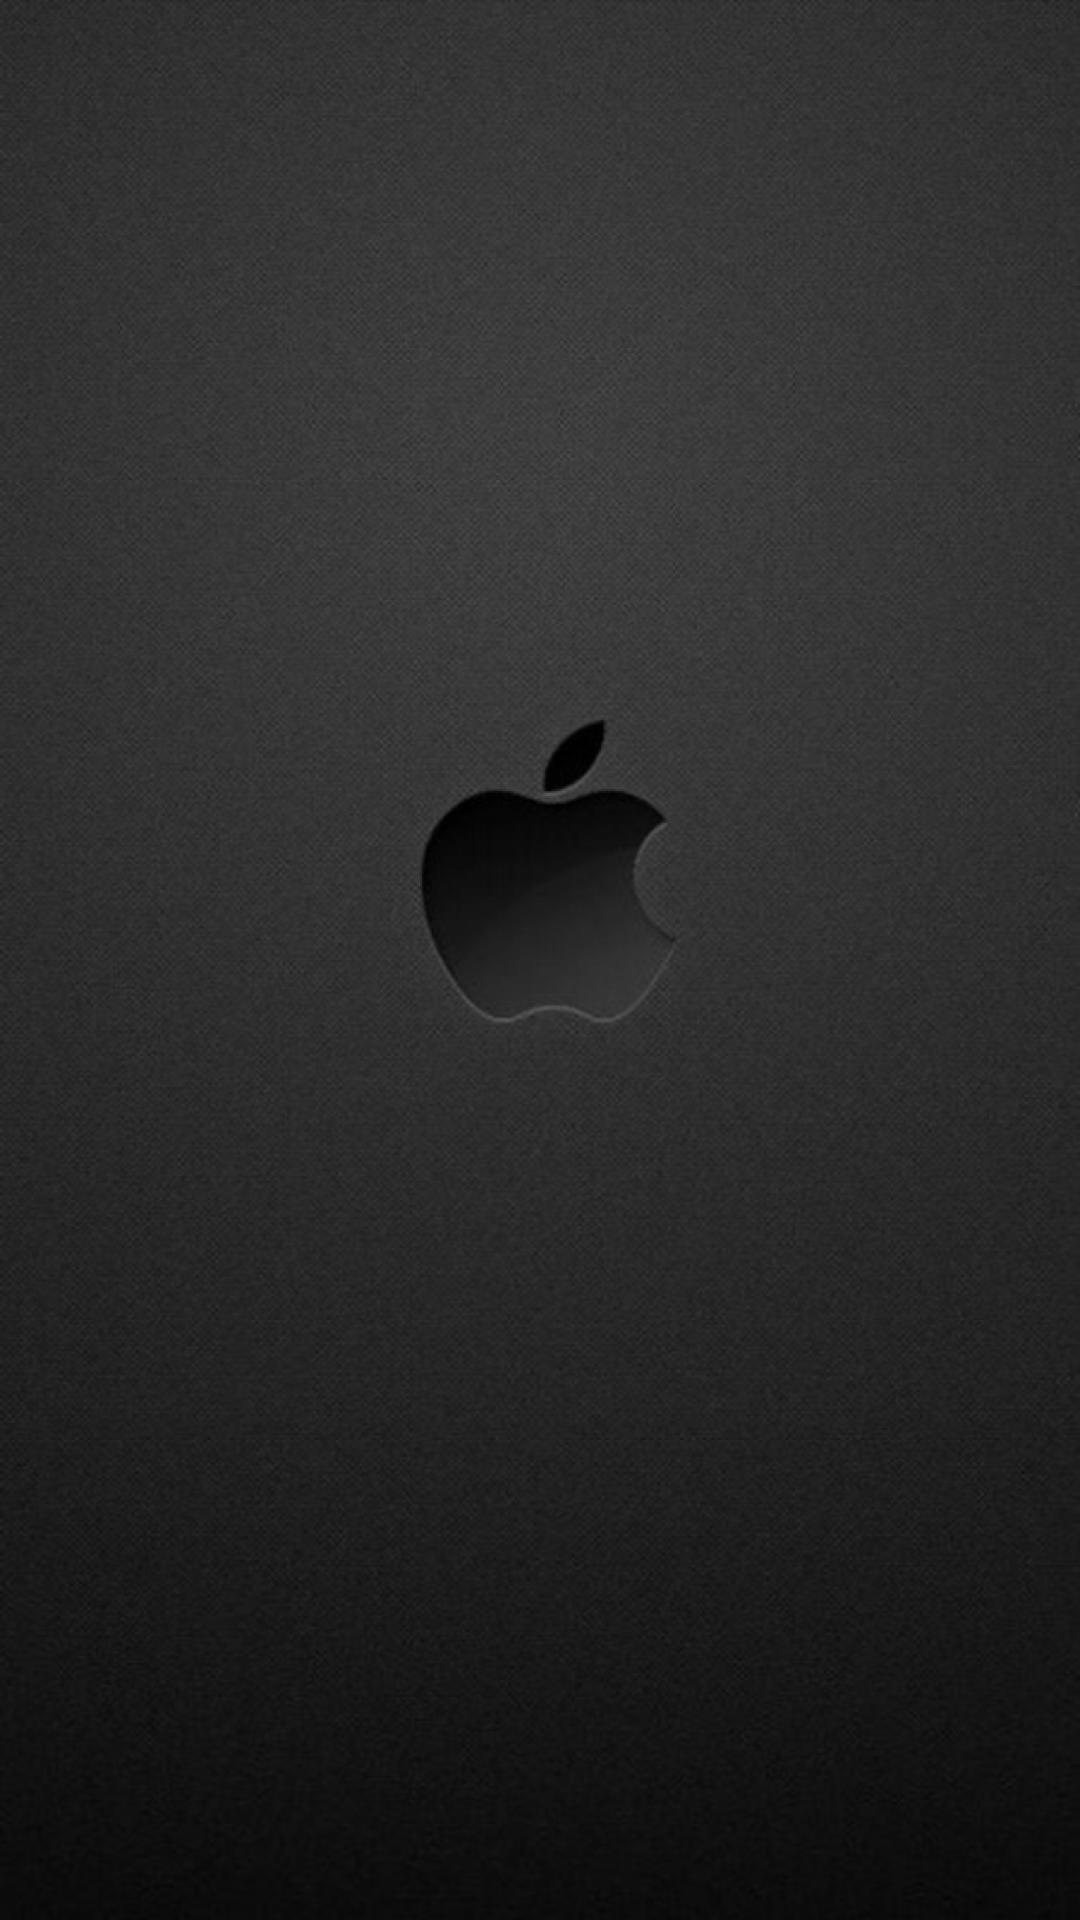 Hd retina wallpaper iphone 6 wallpapersafari - Wallpaper iphone 6 full hd ...